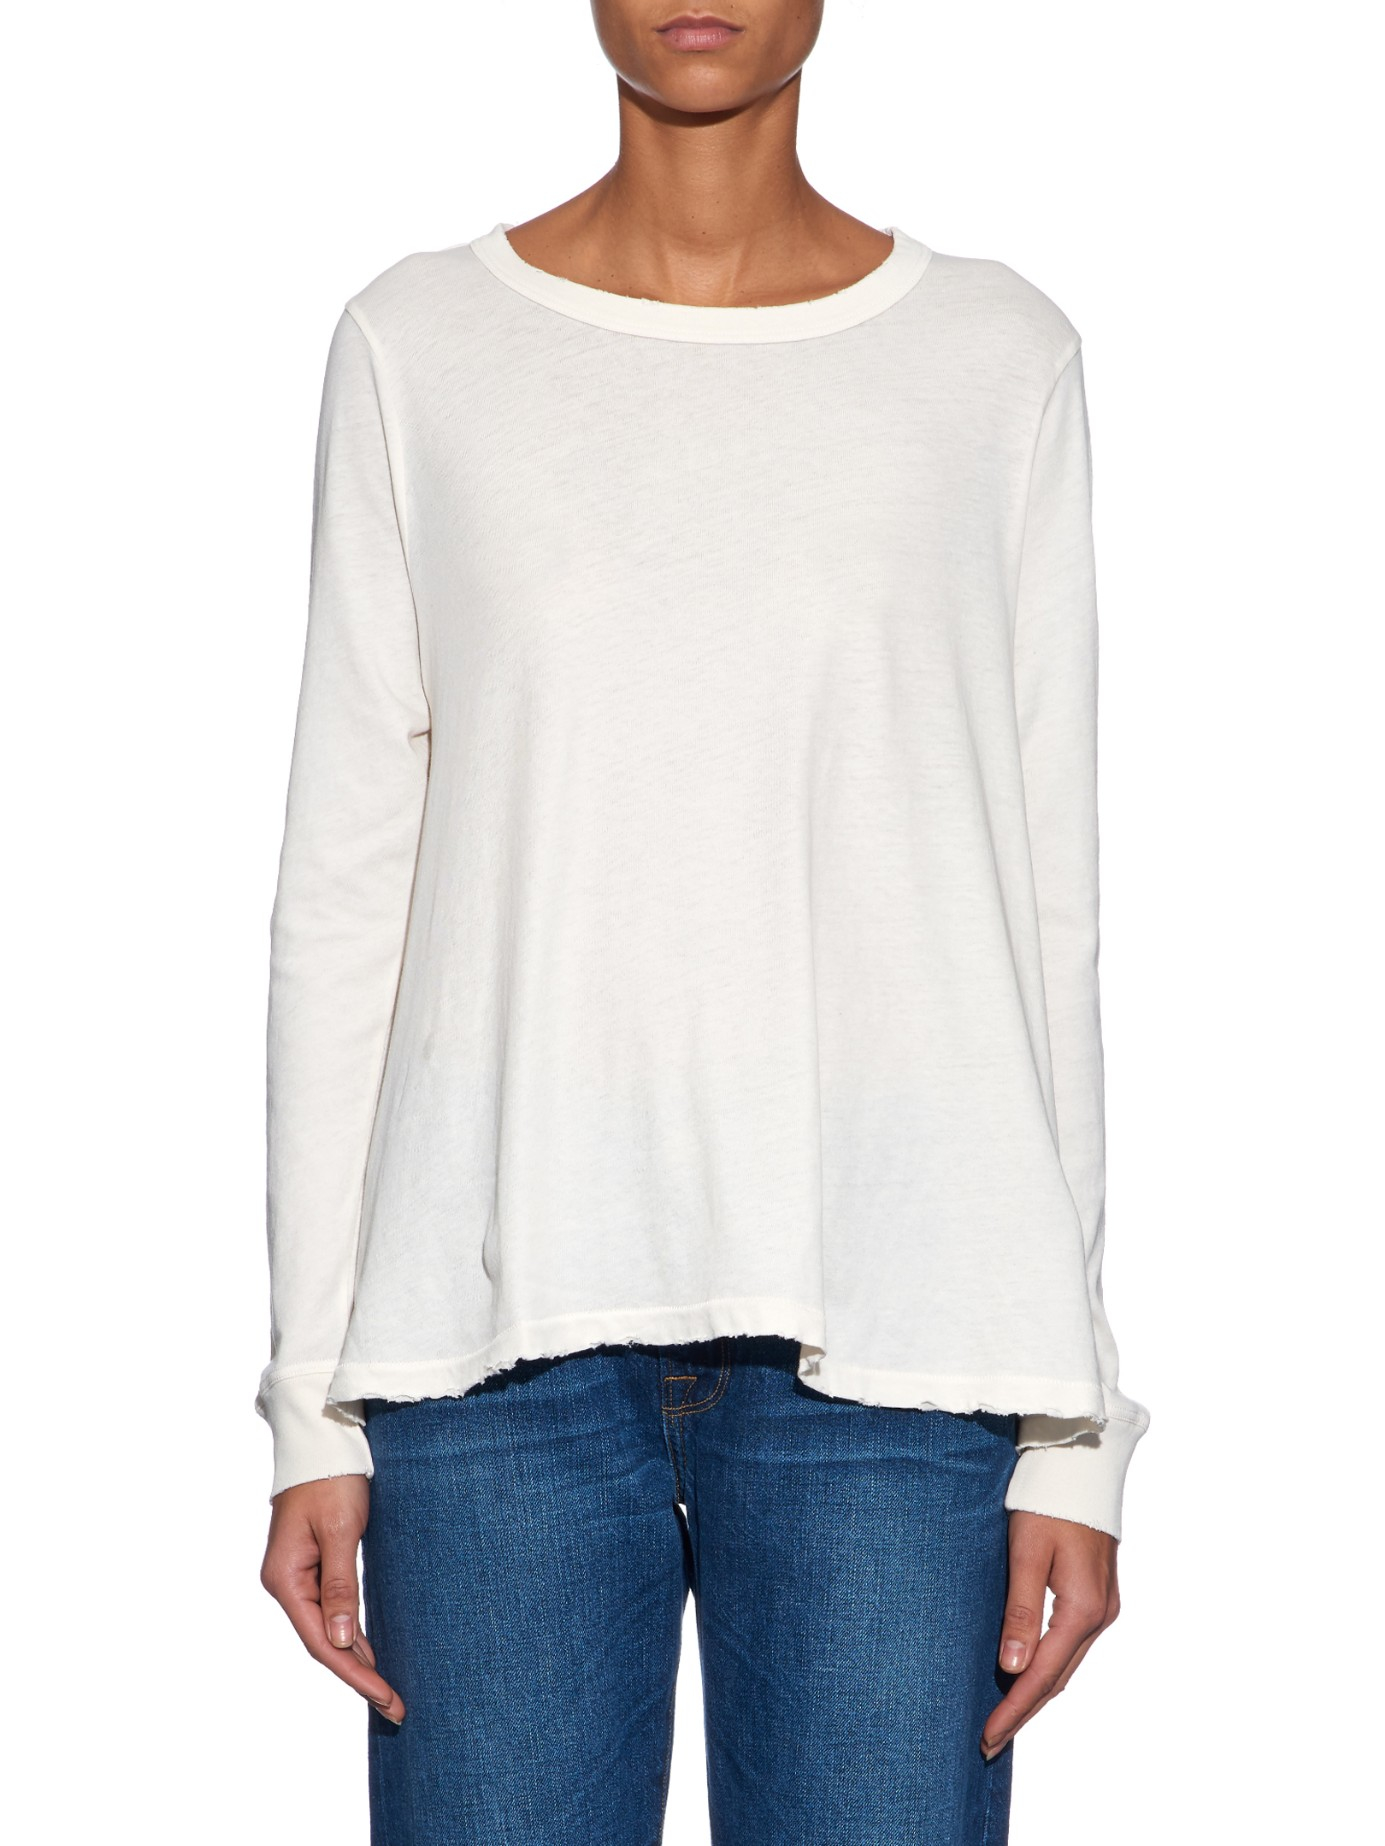 The Great The Swing Long Sleeved T Shirt In Natural Lyst: the great t shirt